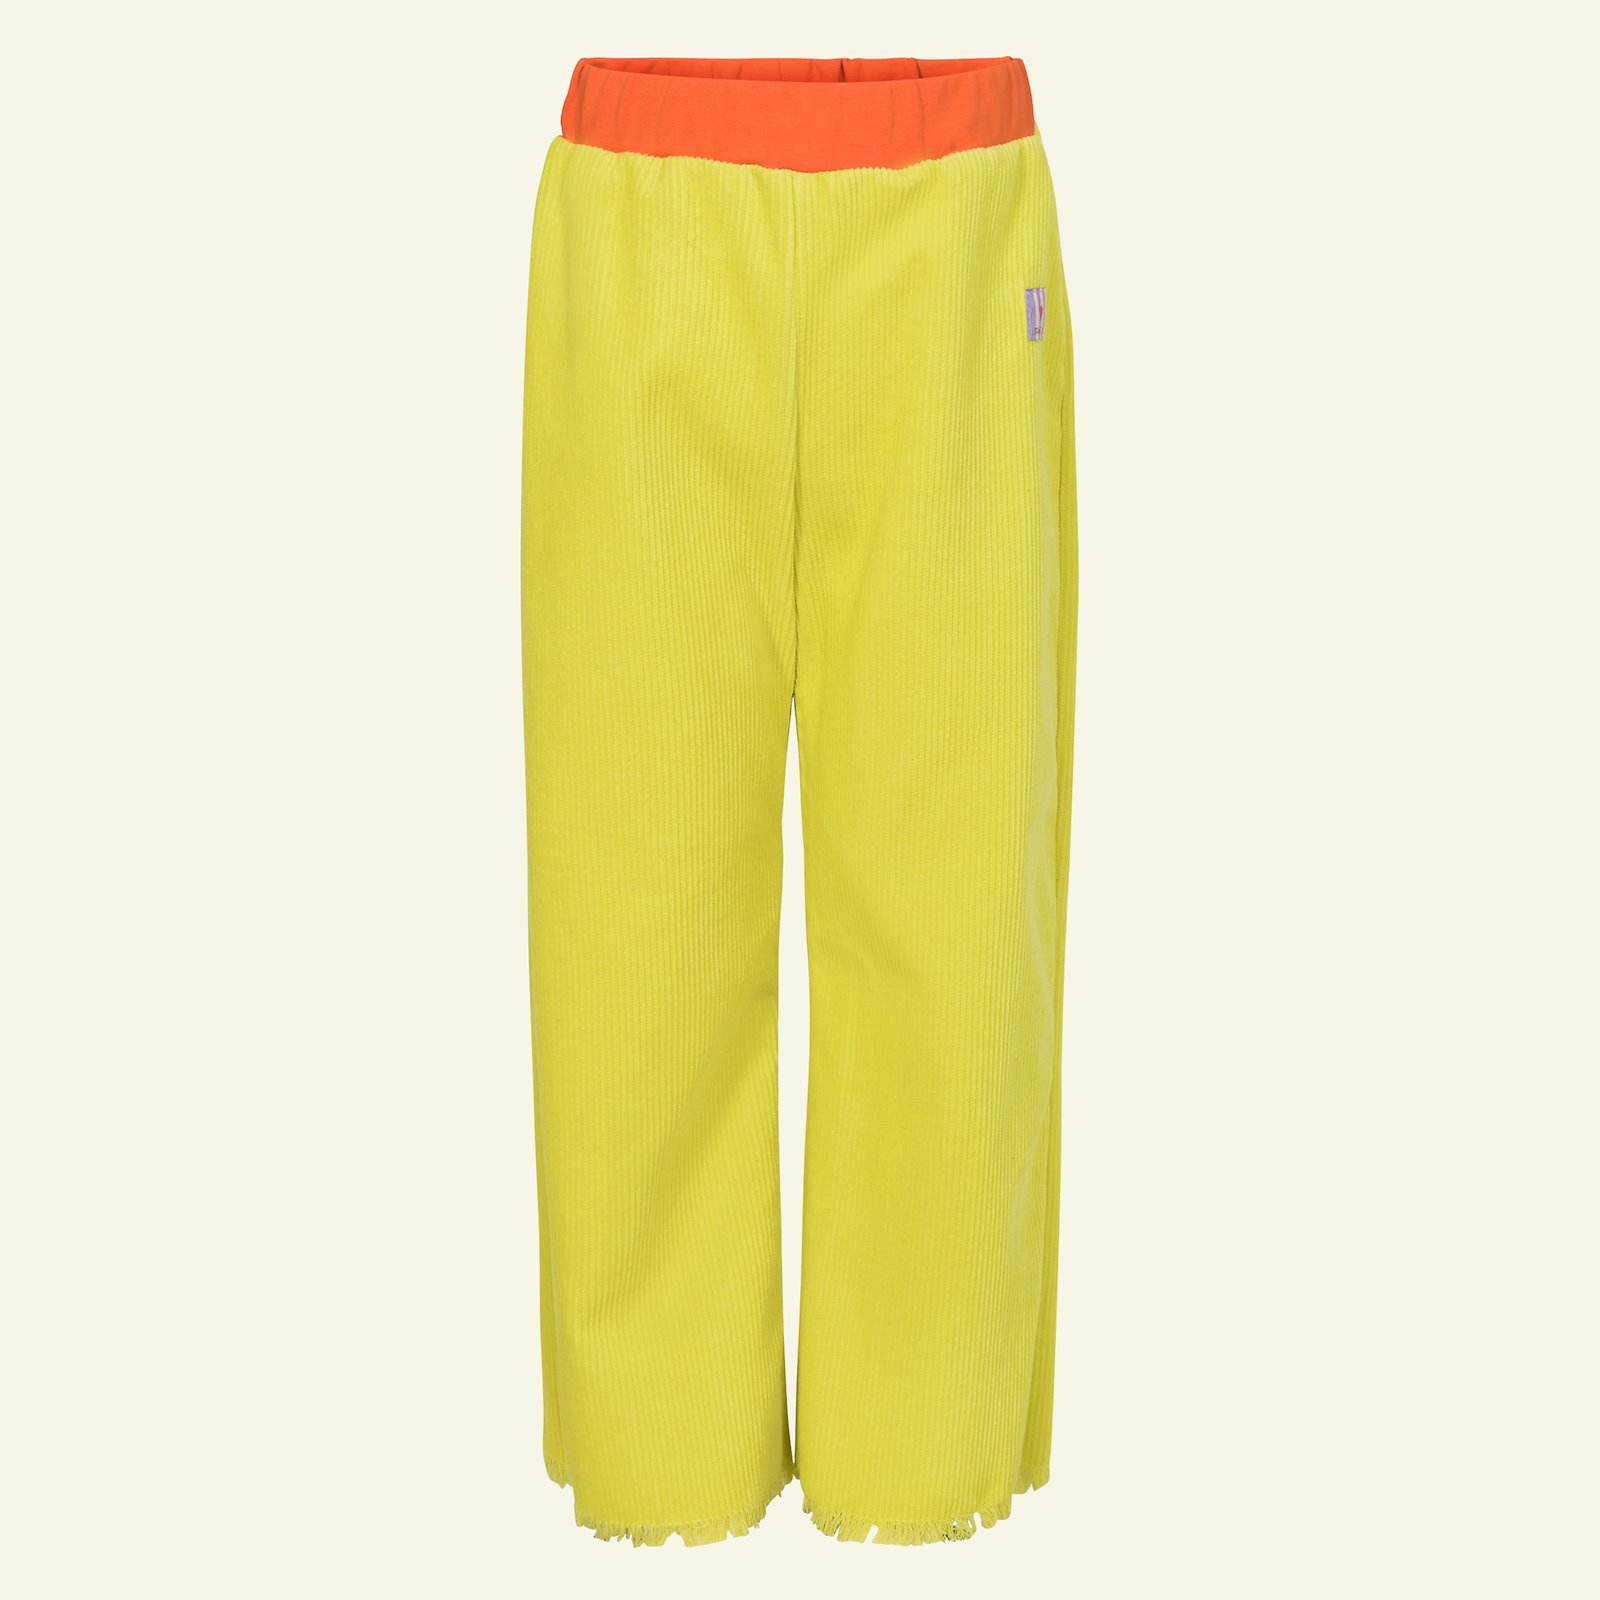 High waist and wide lege trouser, 122/7y p60034_430822_272319_26455_sskit